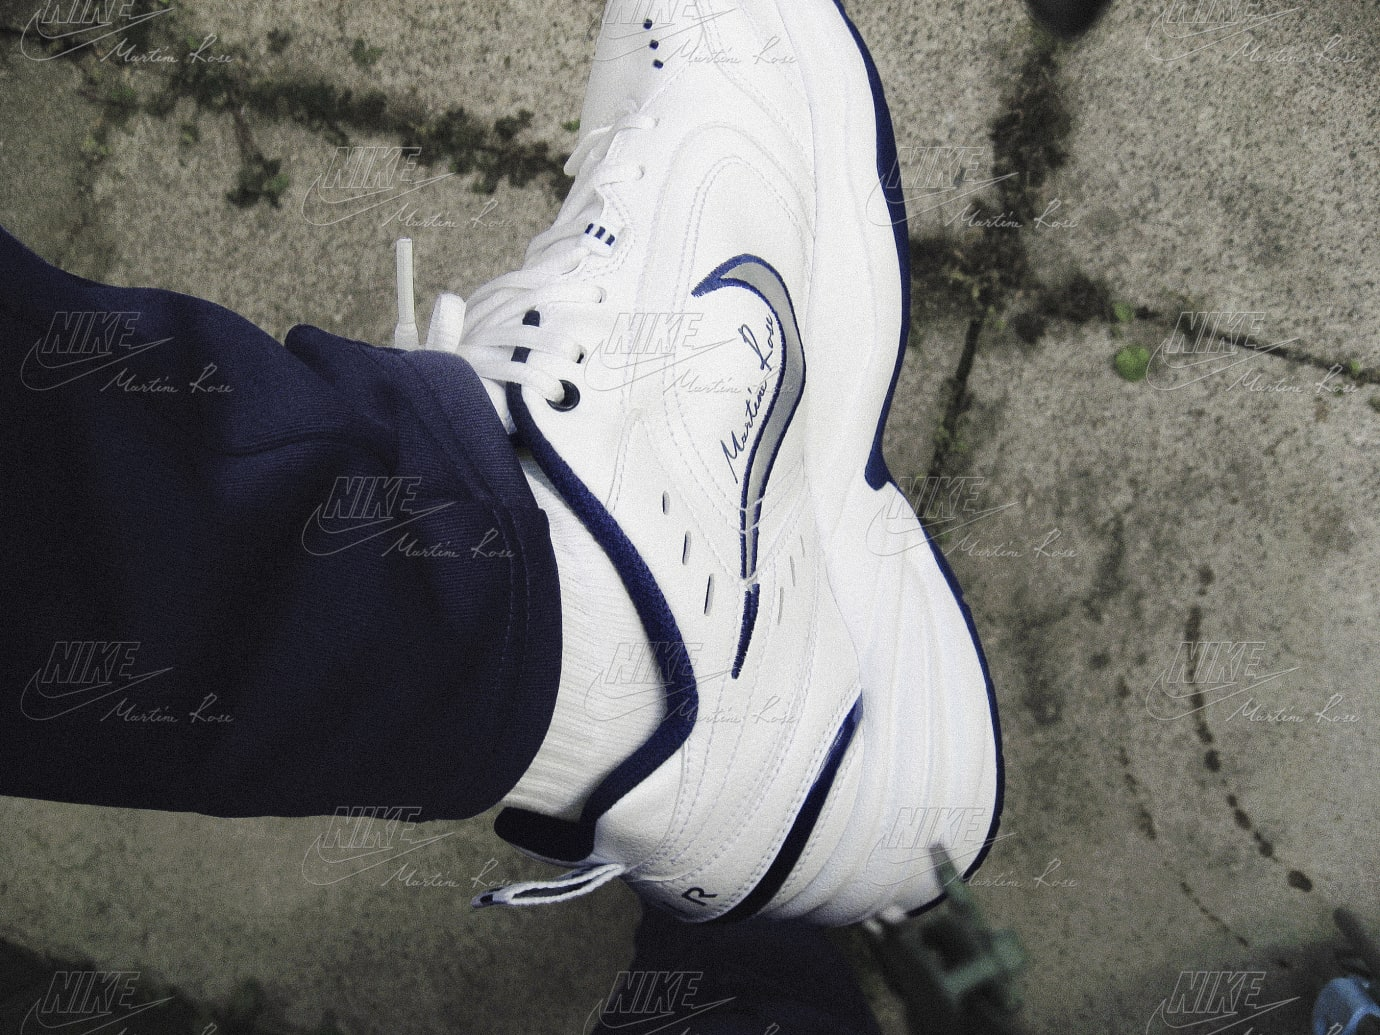 Image via Nike Martine Rose x Nike Air Monarch Collection 2 f233ee51d